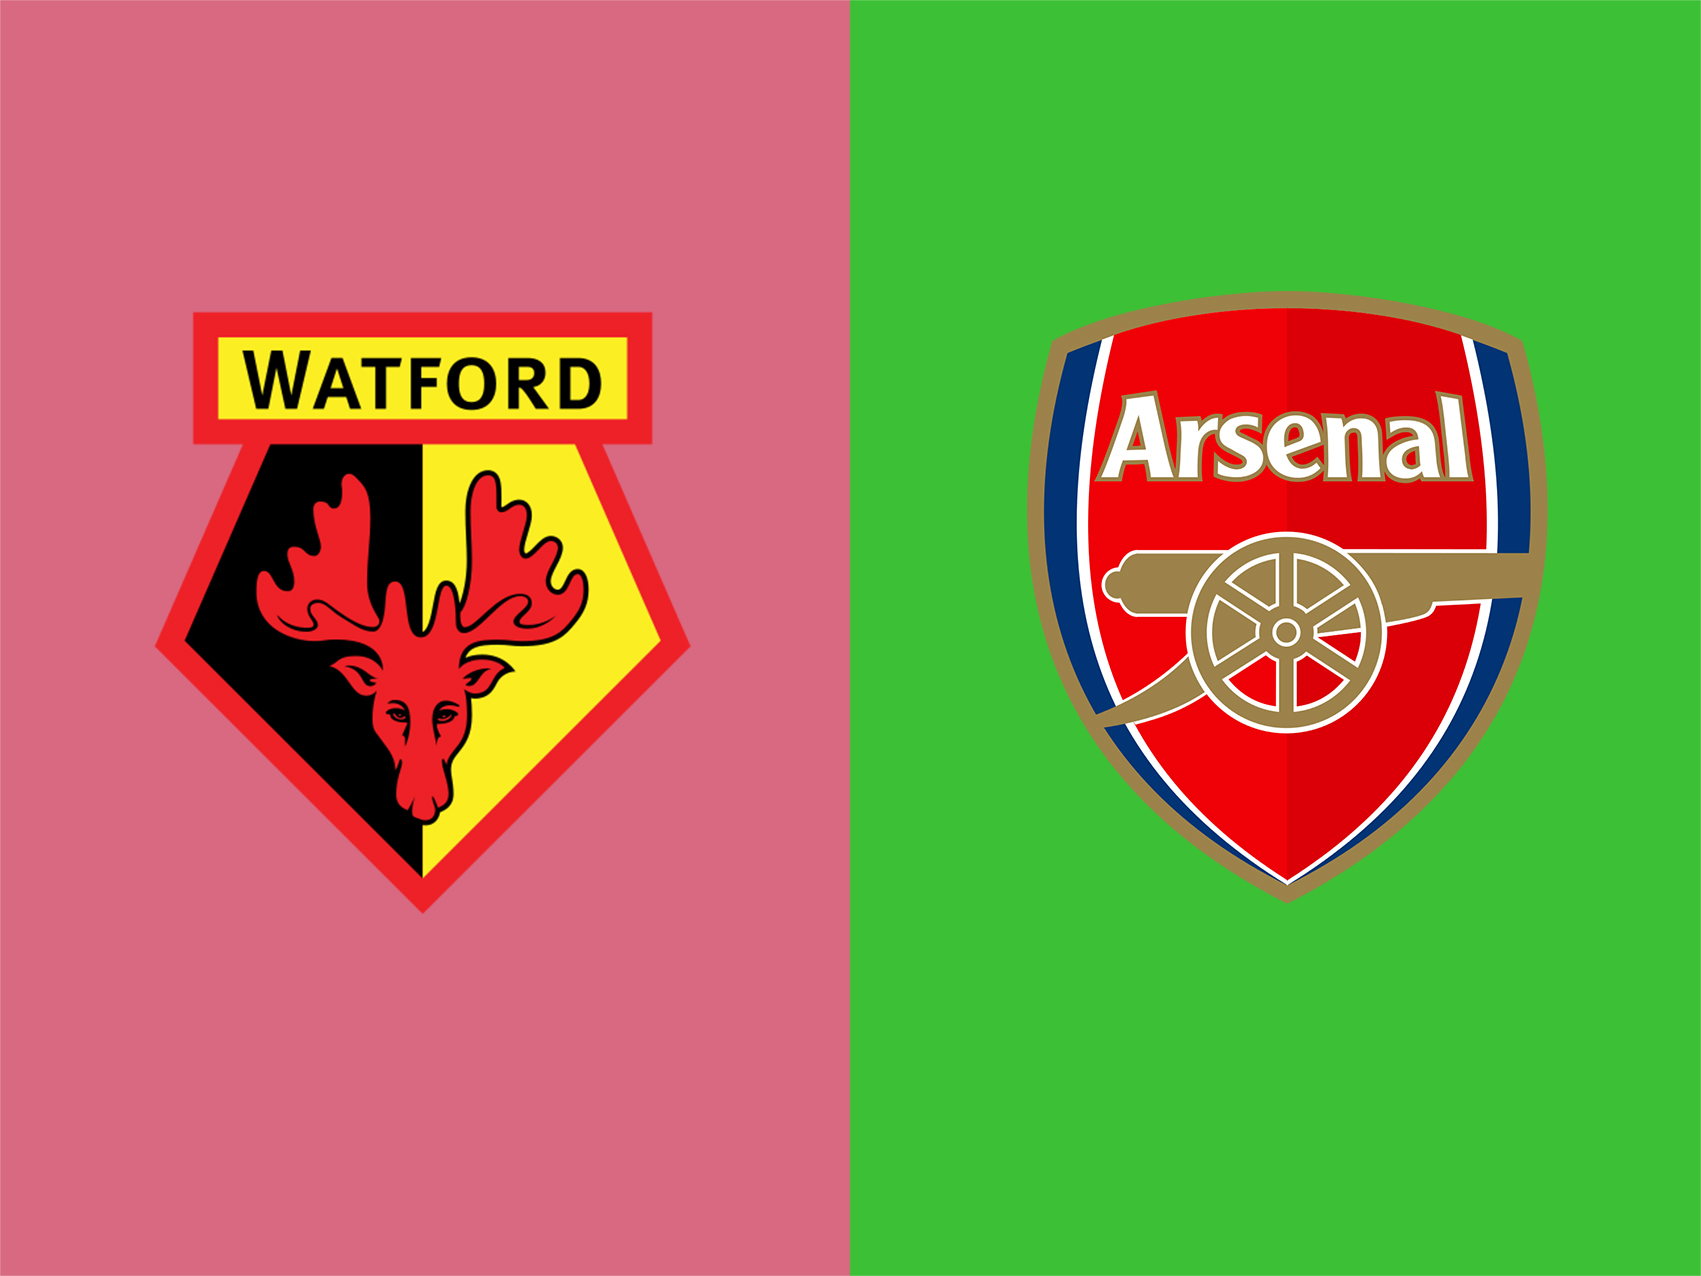 soi-keo-ca-cuoc-bong-da-ngay-14-9-Watford-vs-Arsenal-do-it-thang-do-nhieu-b9